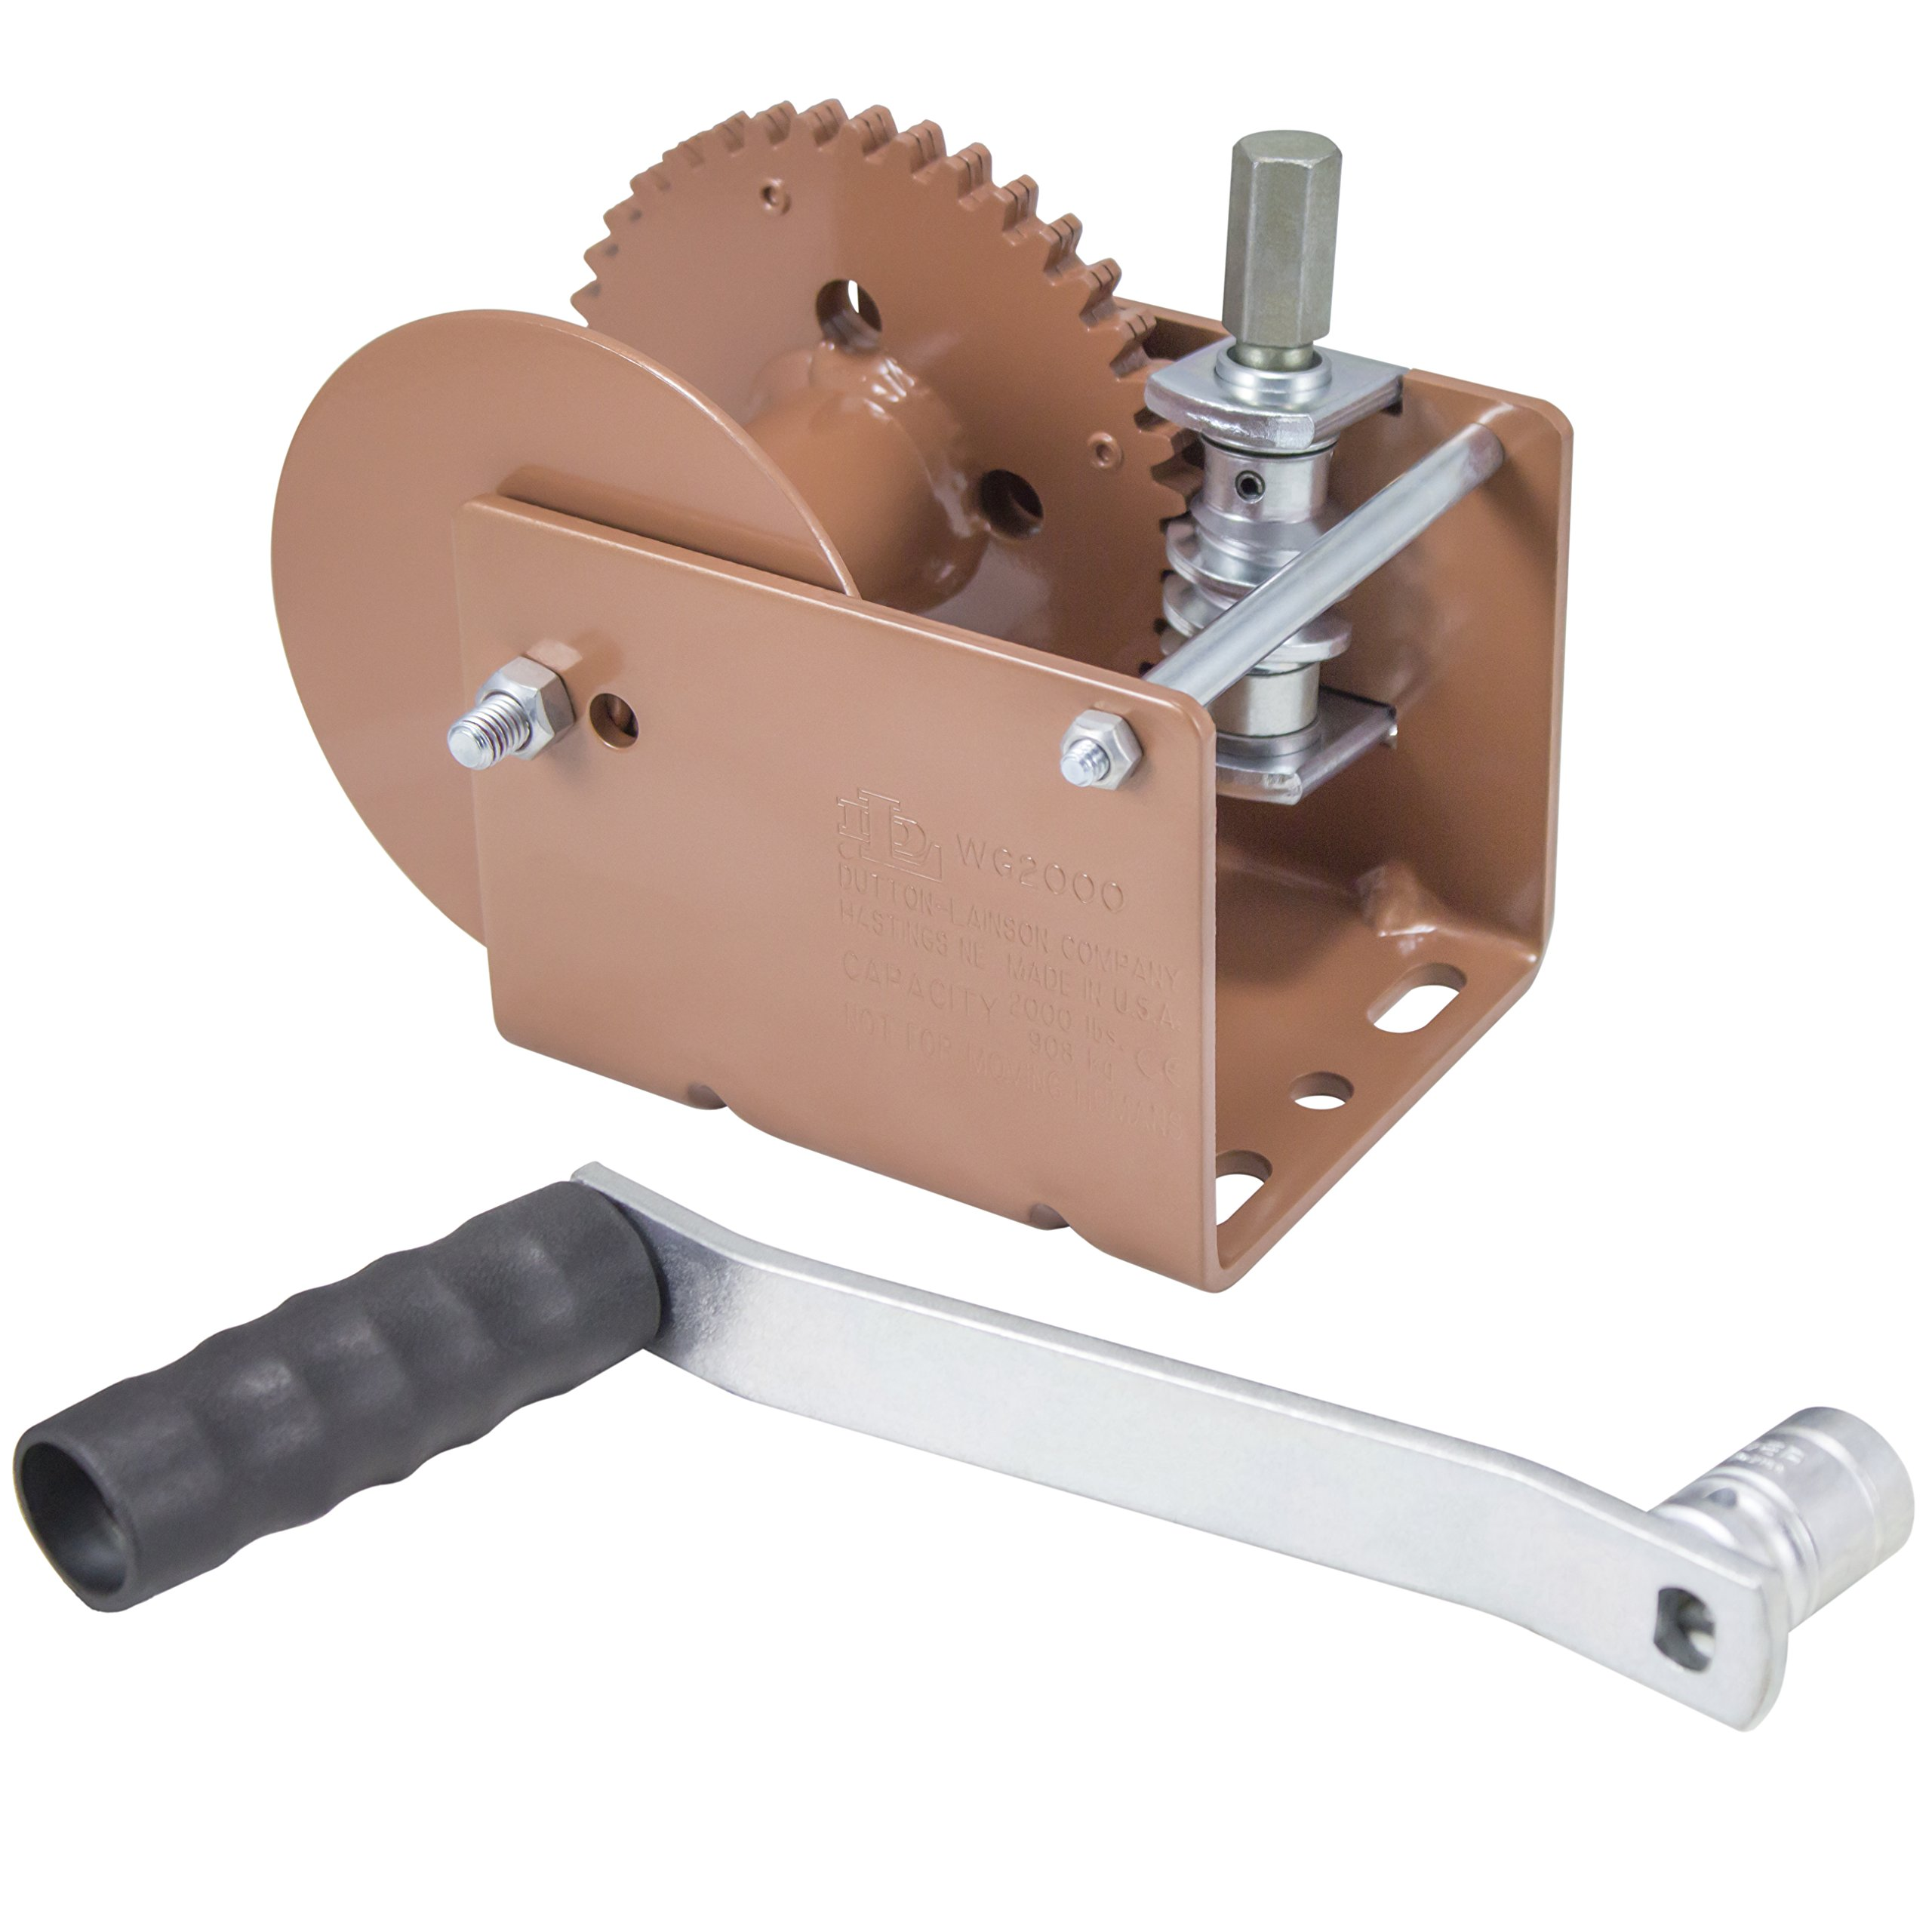 Dutton-Lainson Company (WG2000HEX) Worm Gear Winch with Hex Drive - 2000 lb. Load Capacity by Dutton-Lainson Company